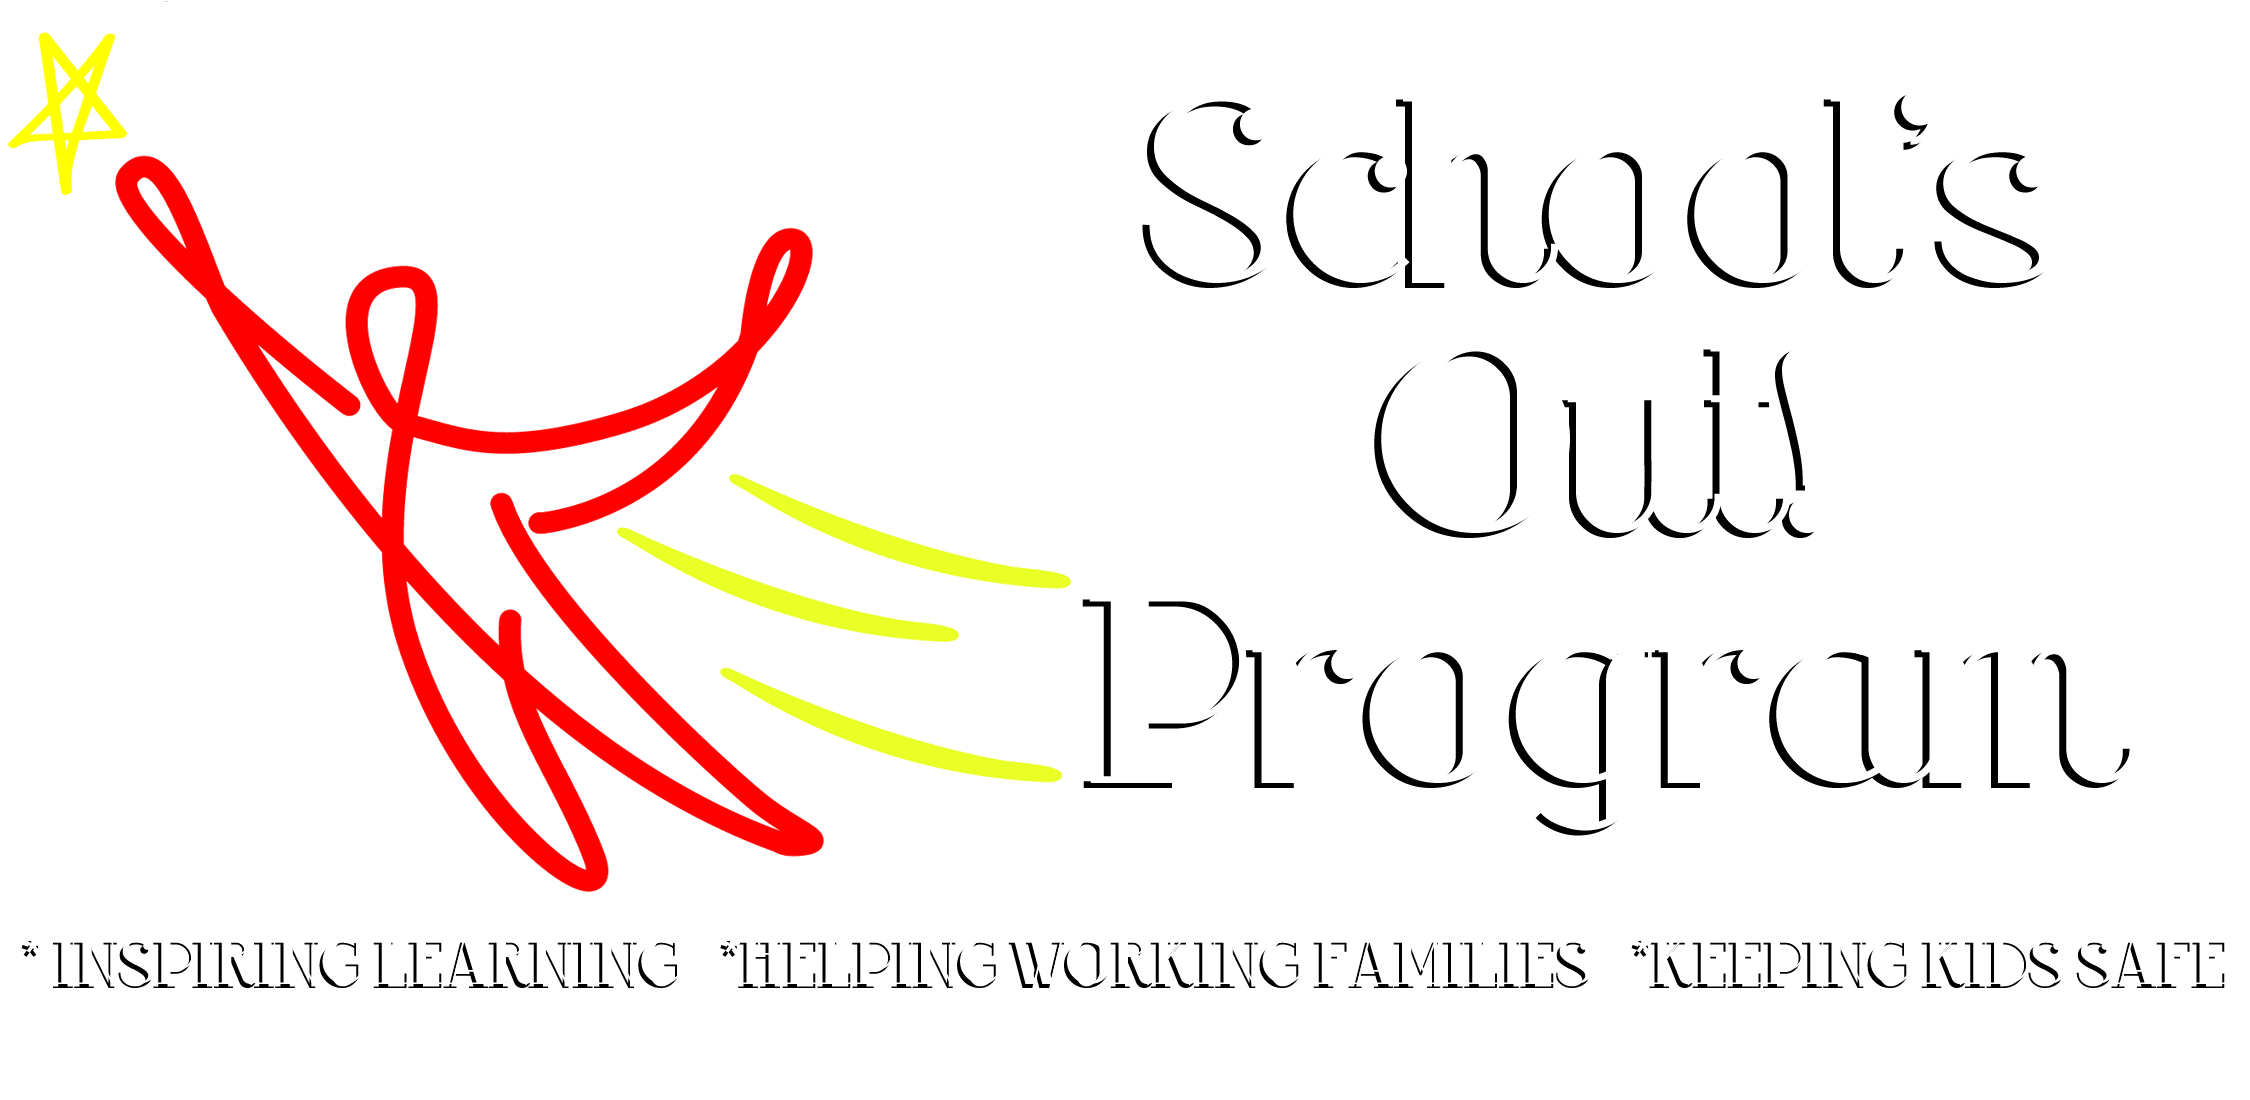 School's Out Program